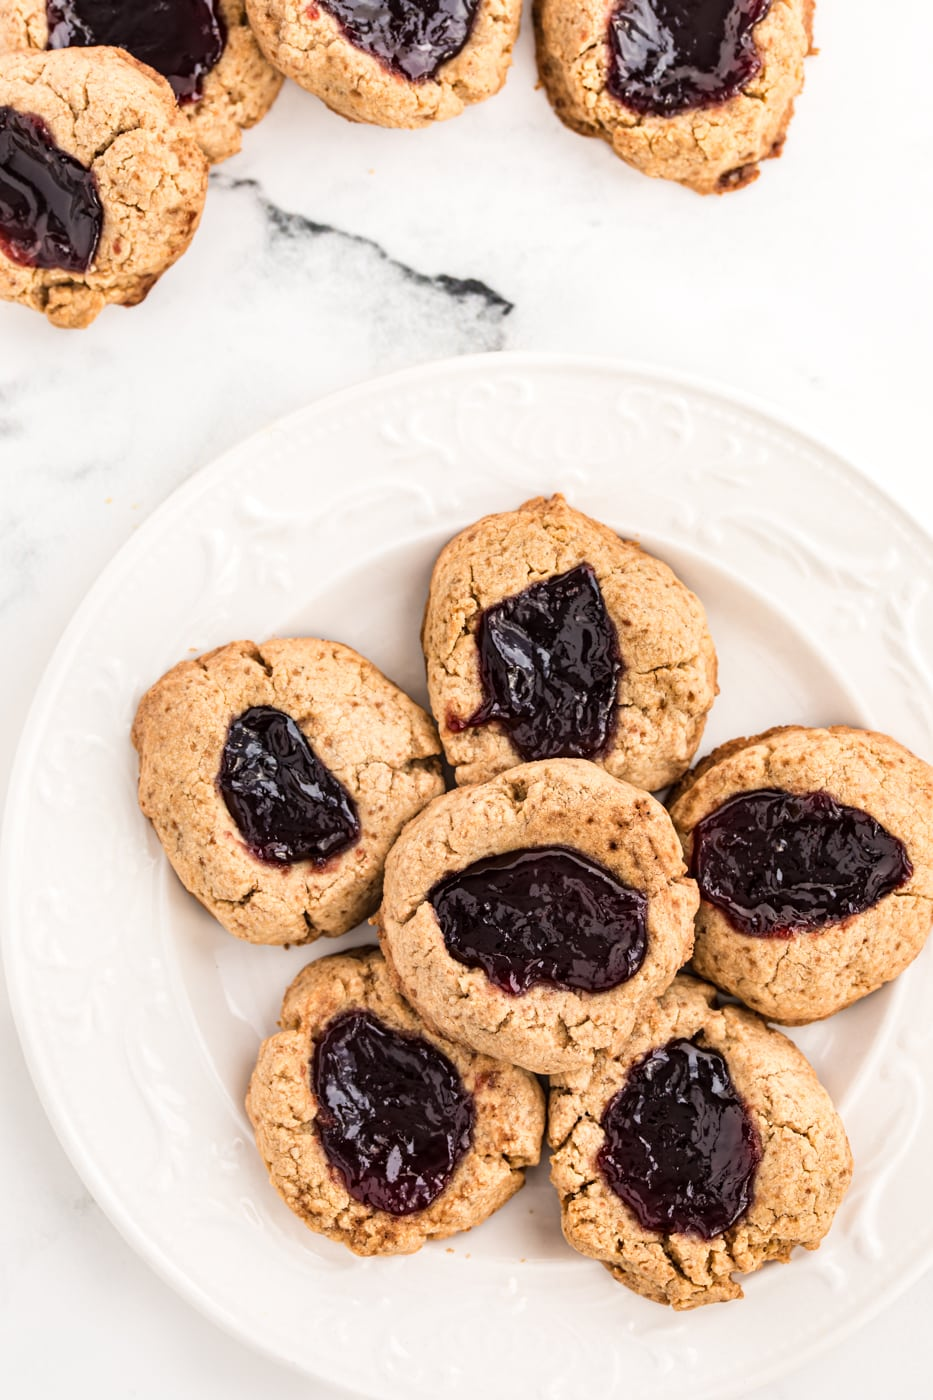 A plate of thumbprint cookies with jam